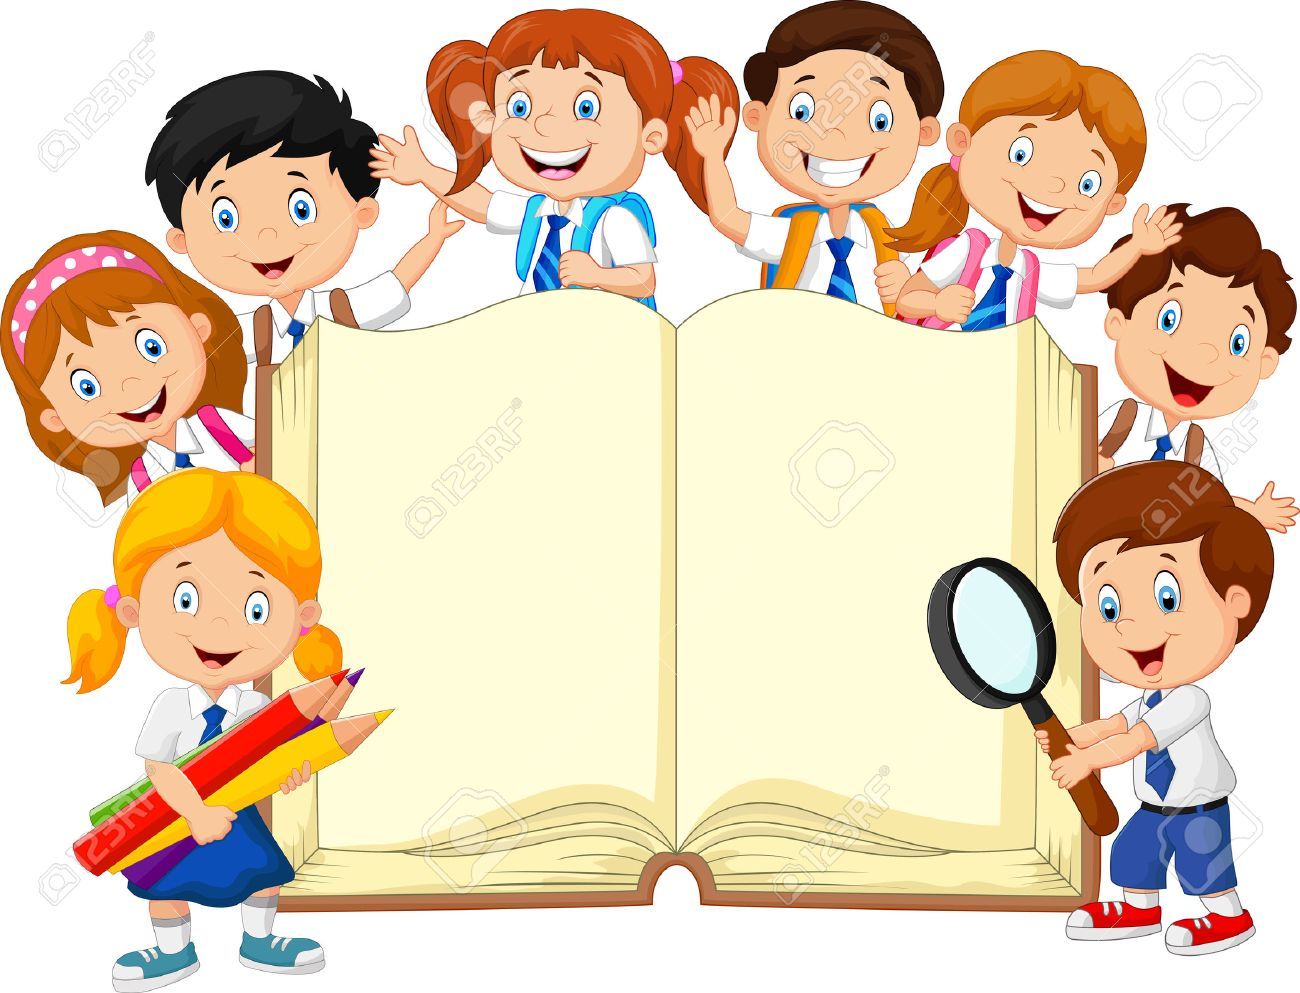 illustration of cartoon school children with book isolated stock vector 46053973 - Cartoon Image Of Children